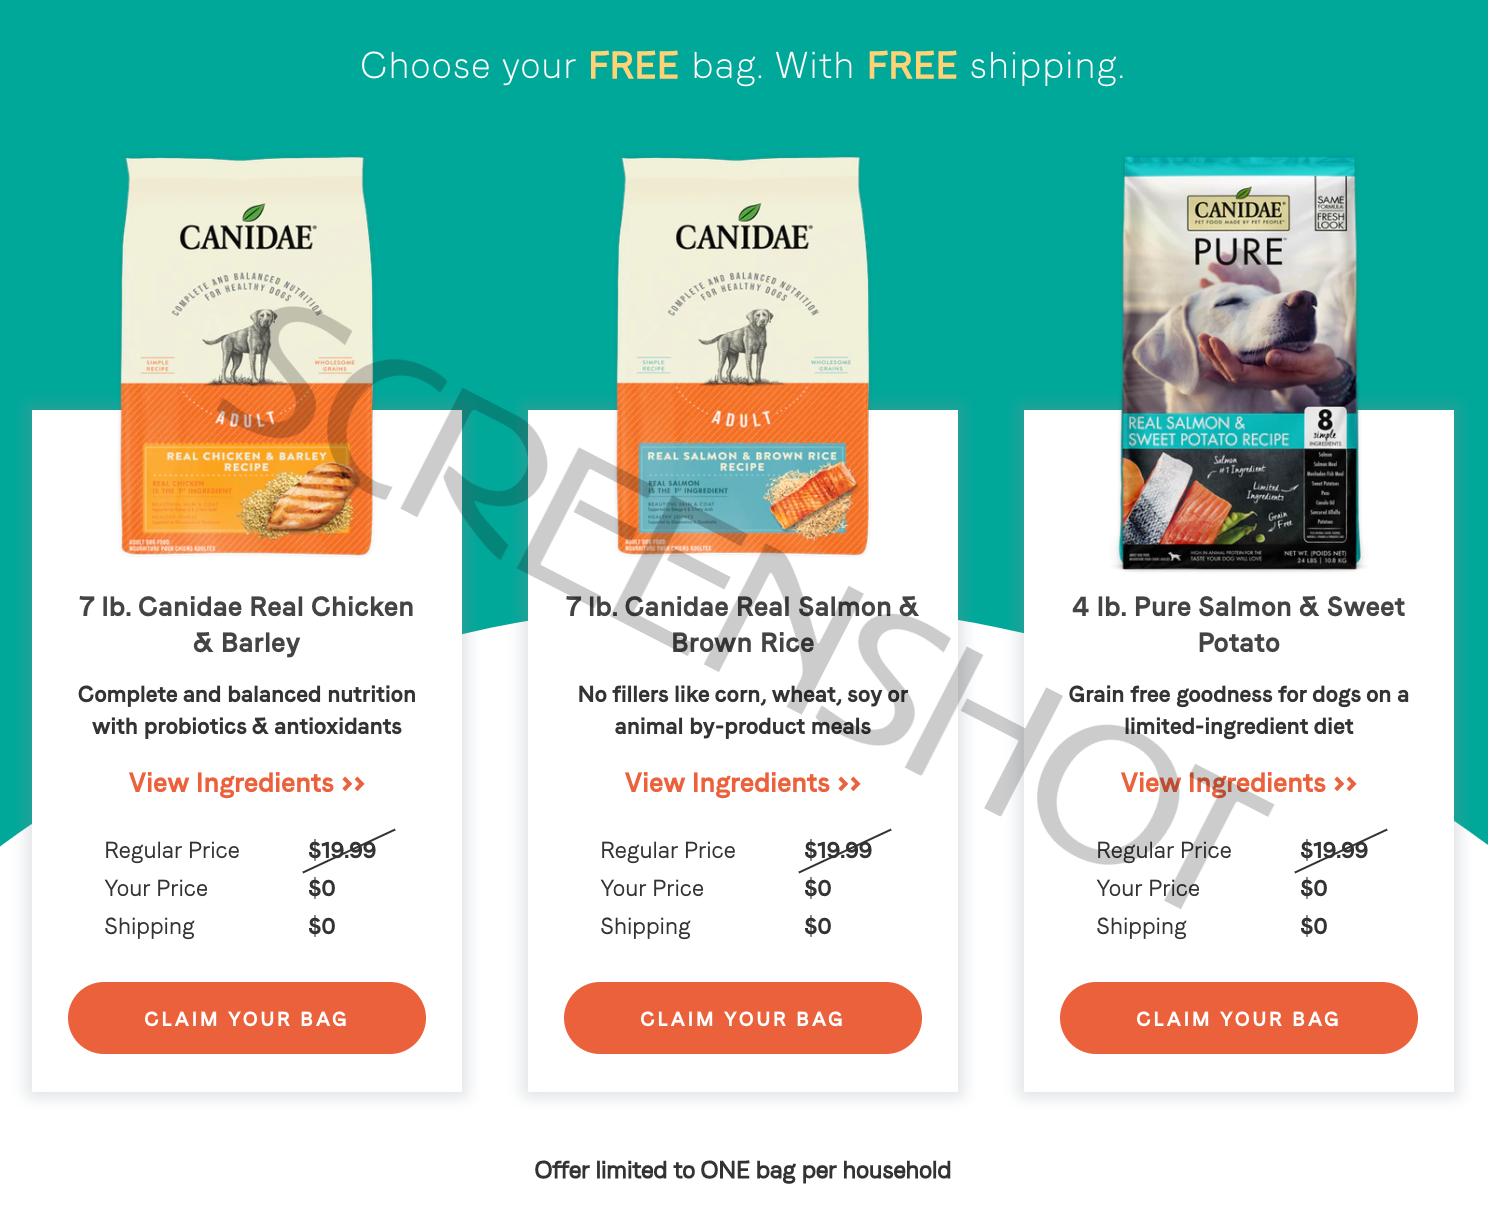 FREE 7 lb. bag of CANIDAE Dog Food + FREE Shipping